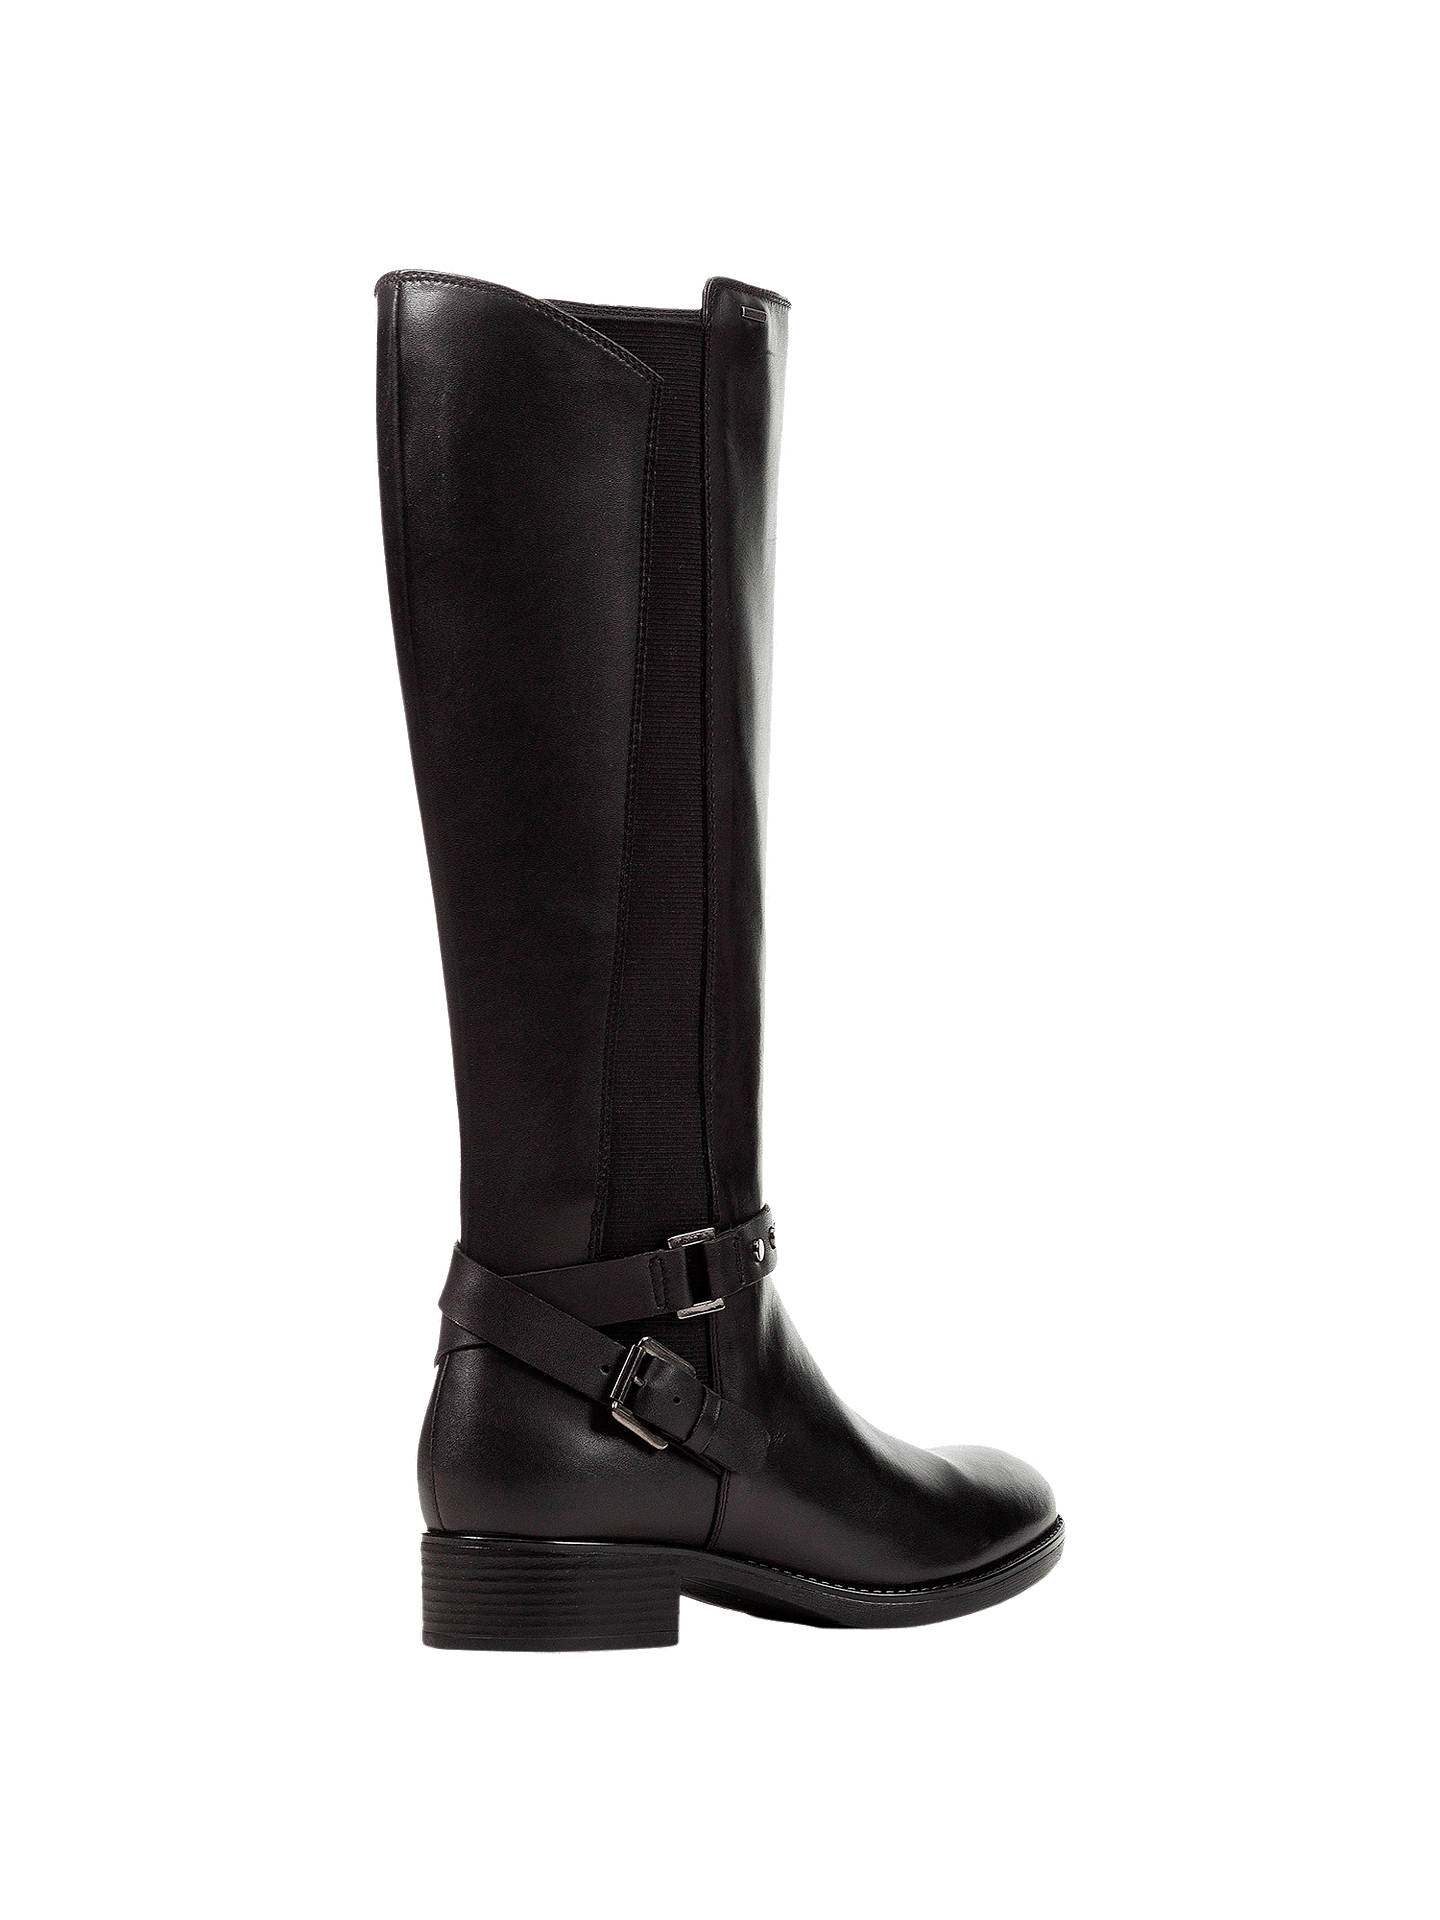 c888ac4a6e273 ... Buy Geox Women's Felicity Napa Block Heel Tall Boots, Black Leather, 4  Online at ...